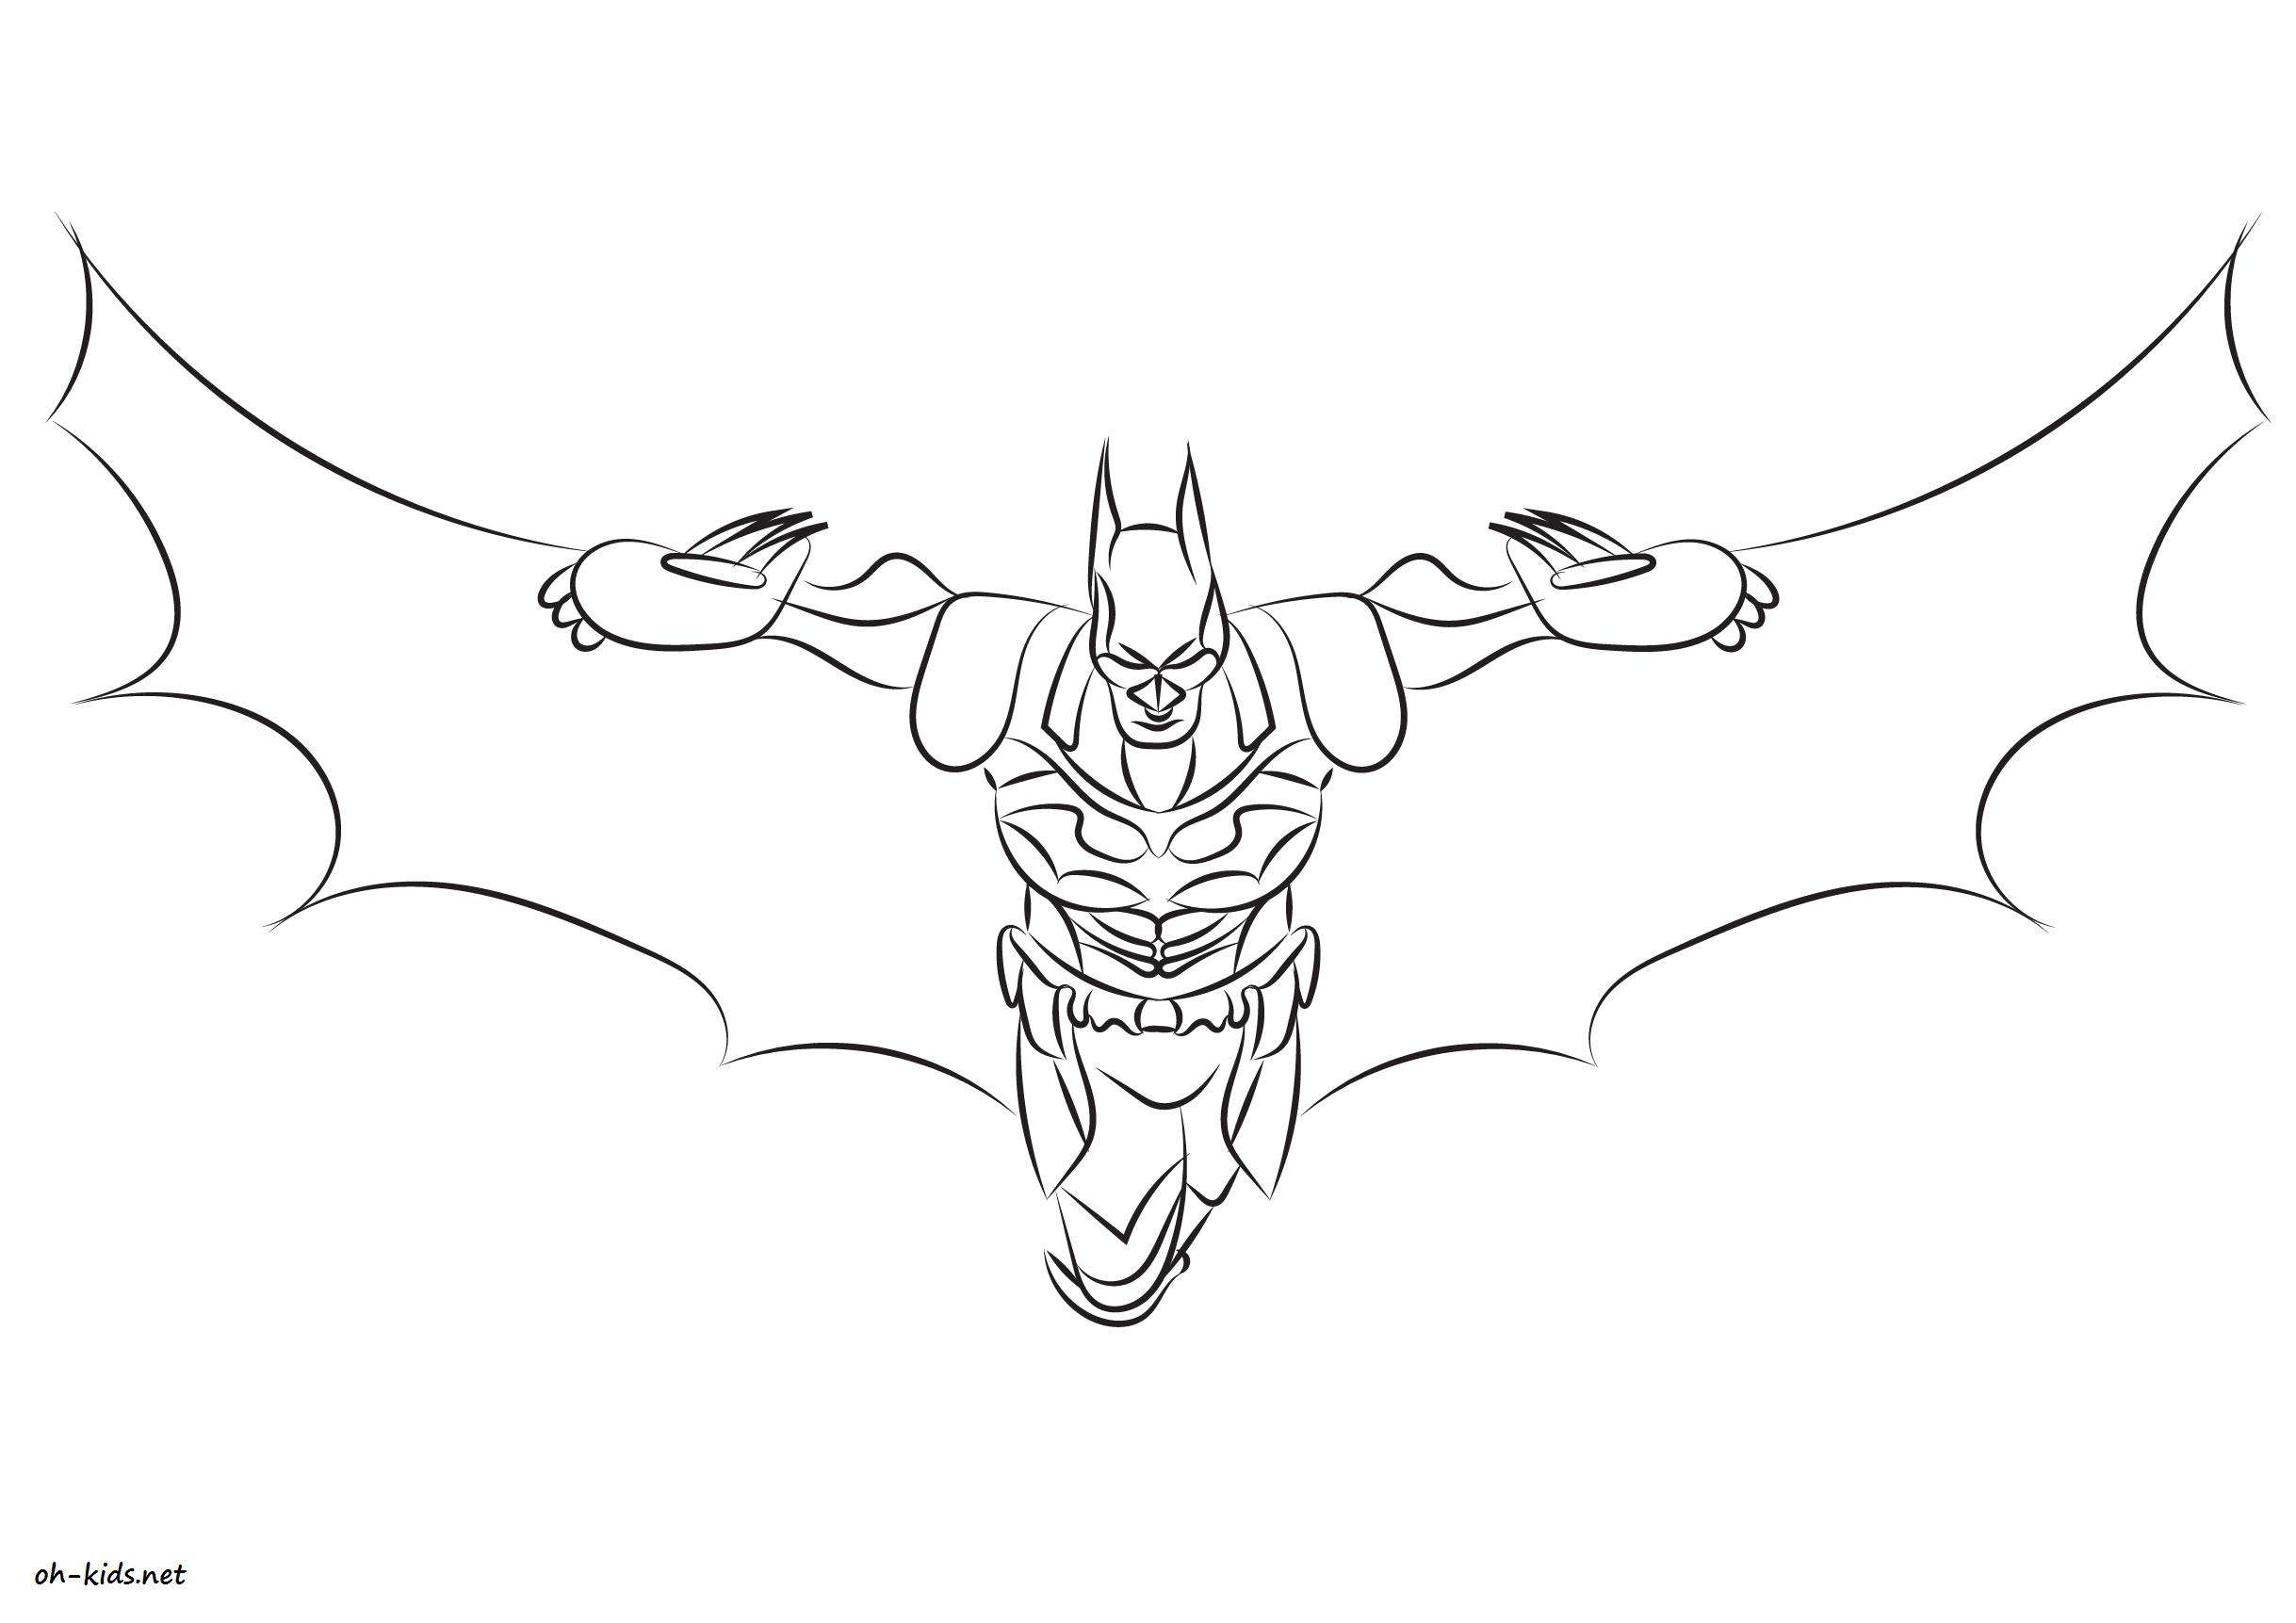 Coloriage batman a imprimer car interior design - Coloriage a imprimer batman ...